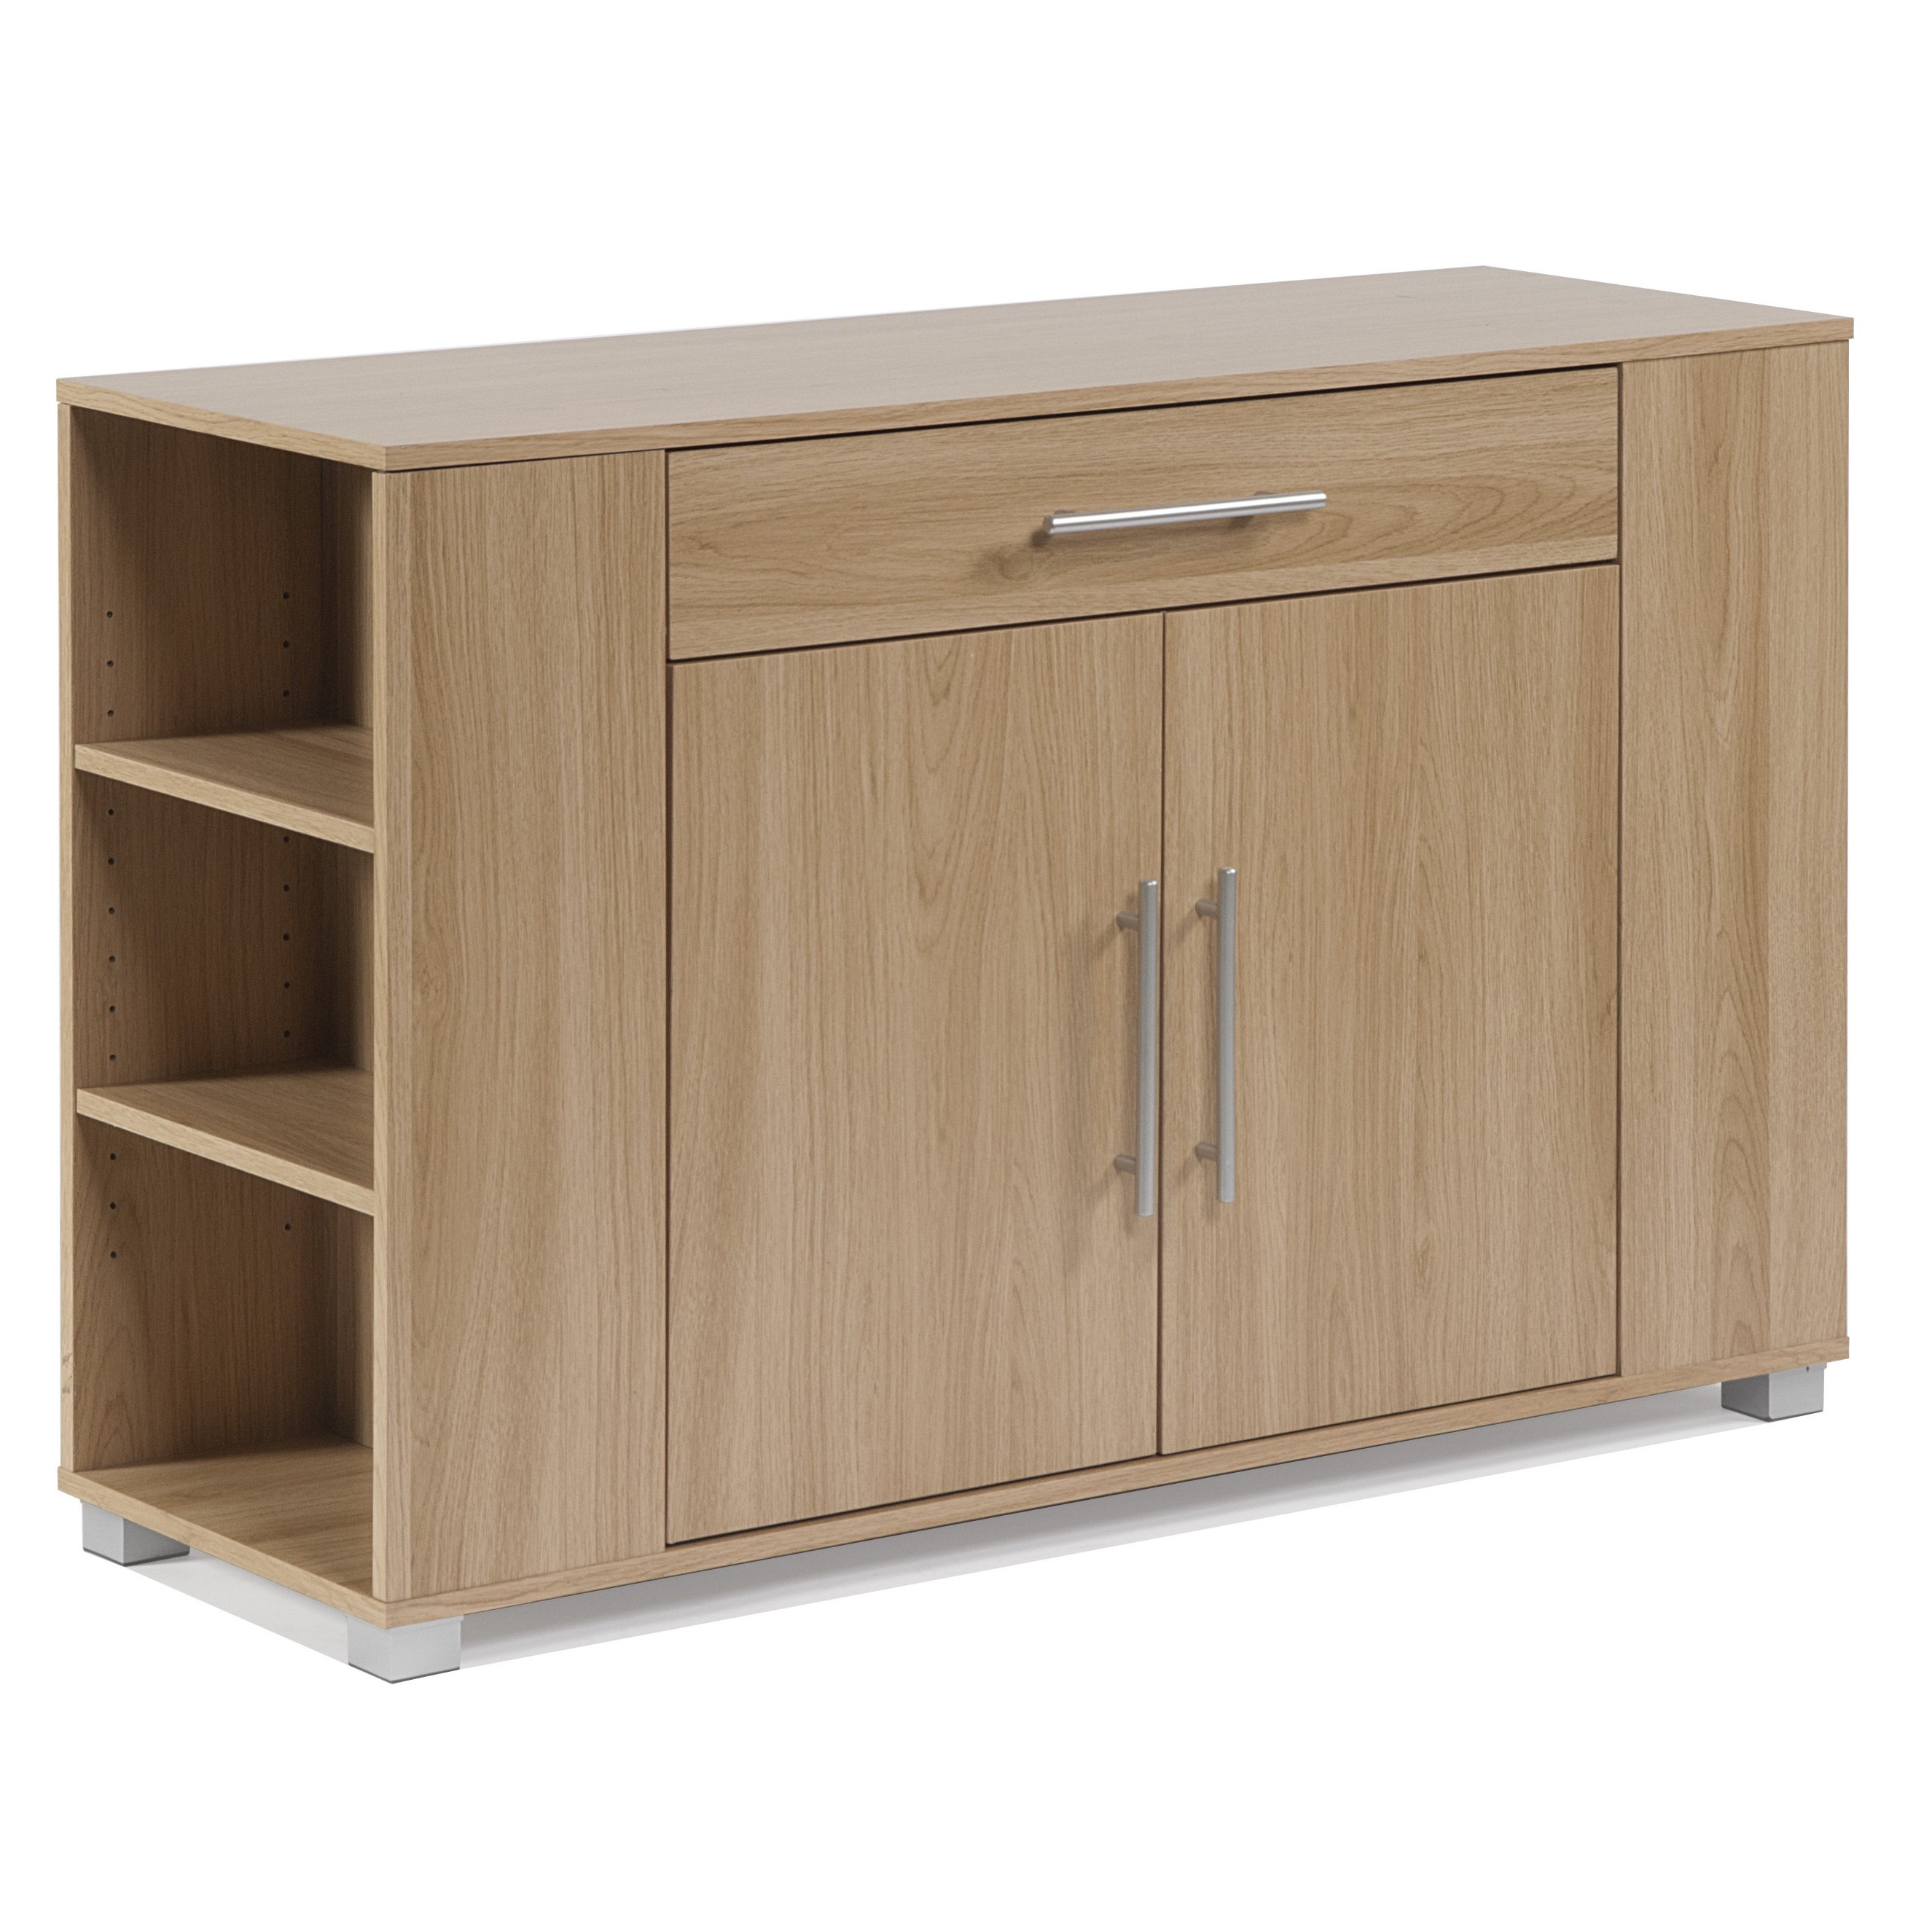 Most Popular Shop Clay Alder Home Otowi 2 Door Sideboard With Drawer And End With Burn Tan Finish 2 Door Sideboards (View 5 of 20)